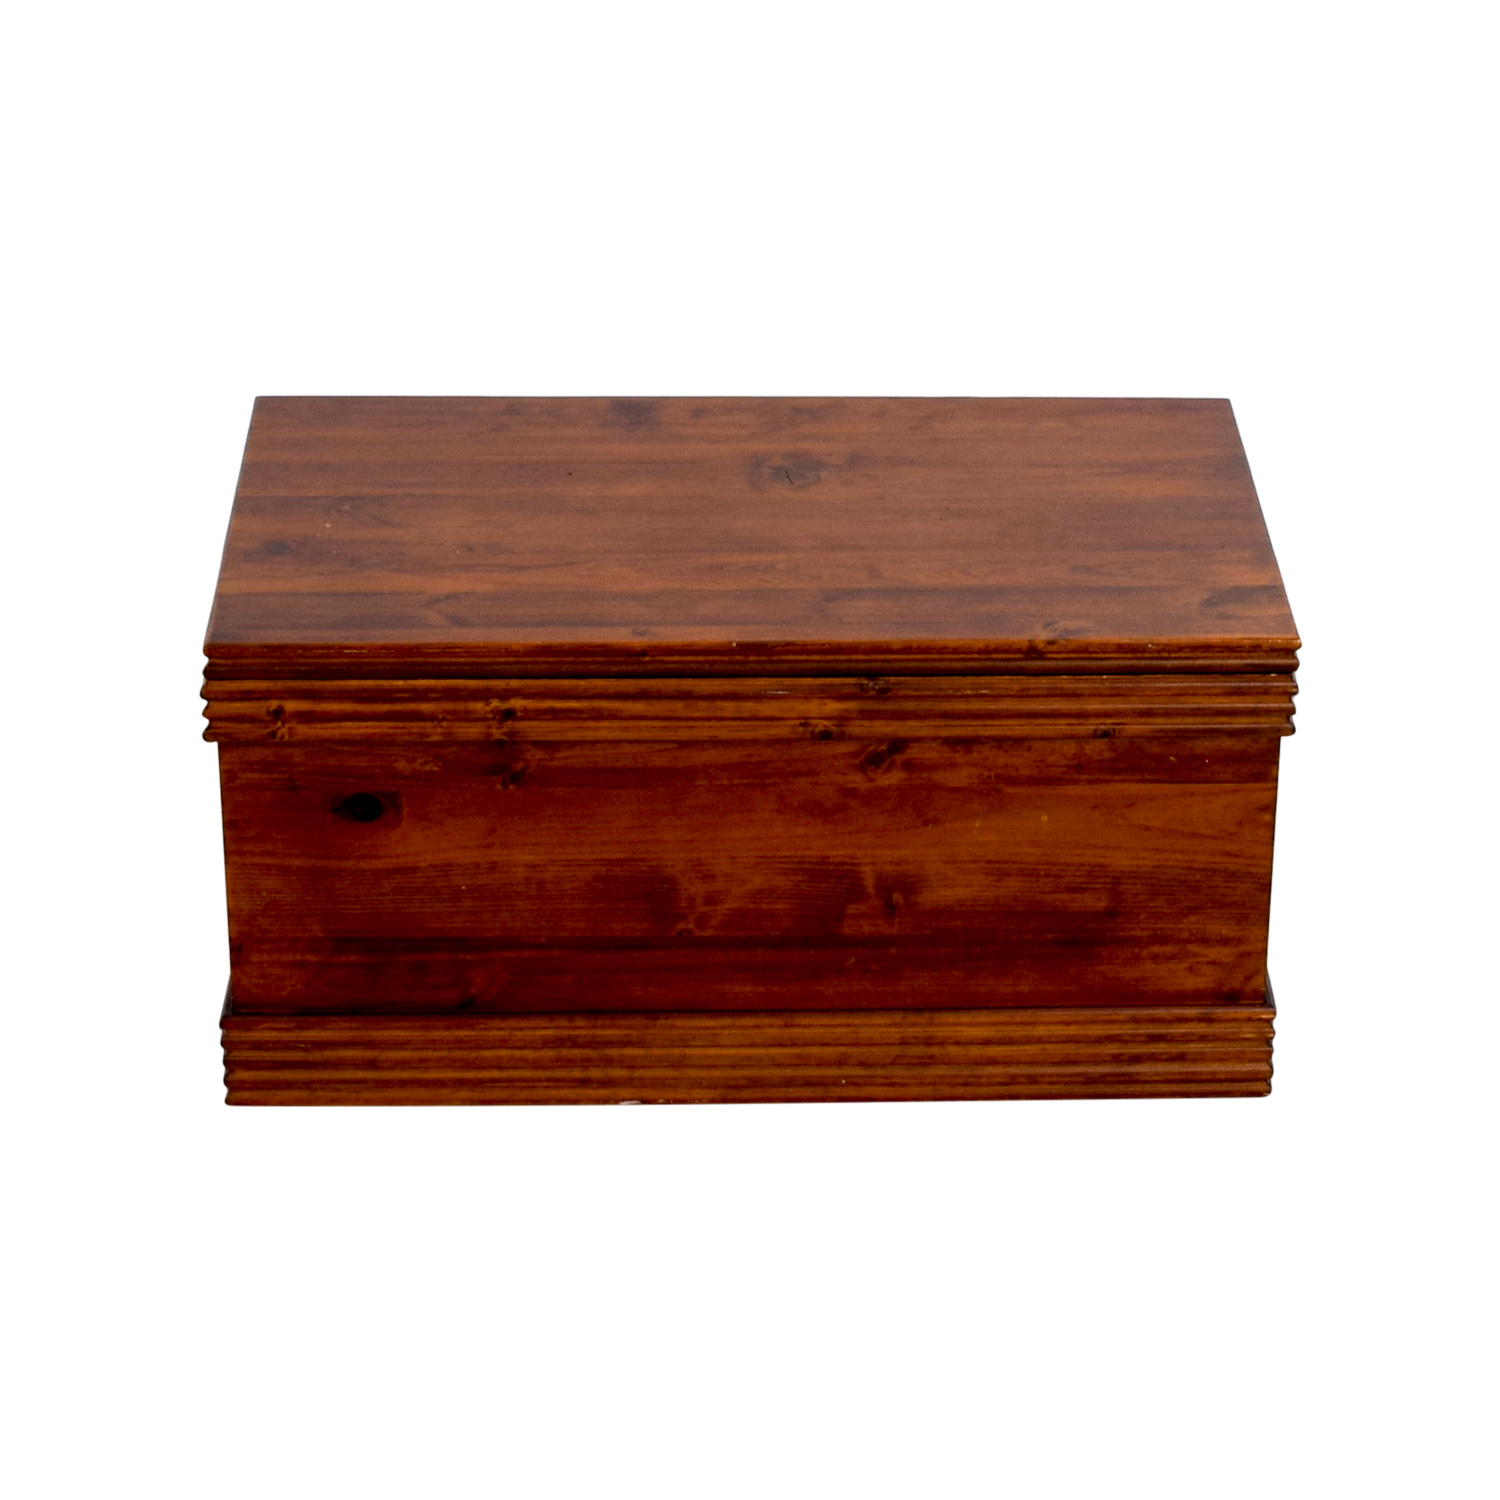 Wood Trunk price